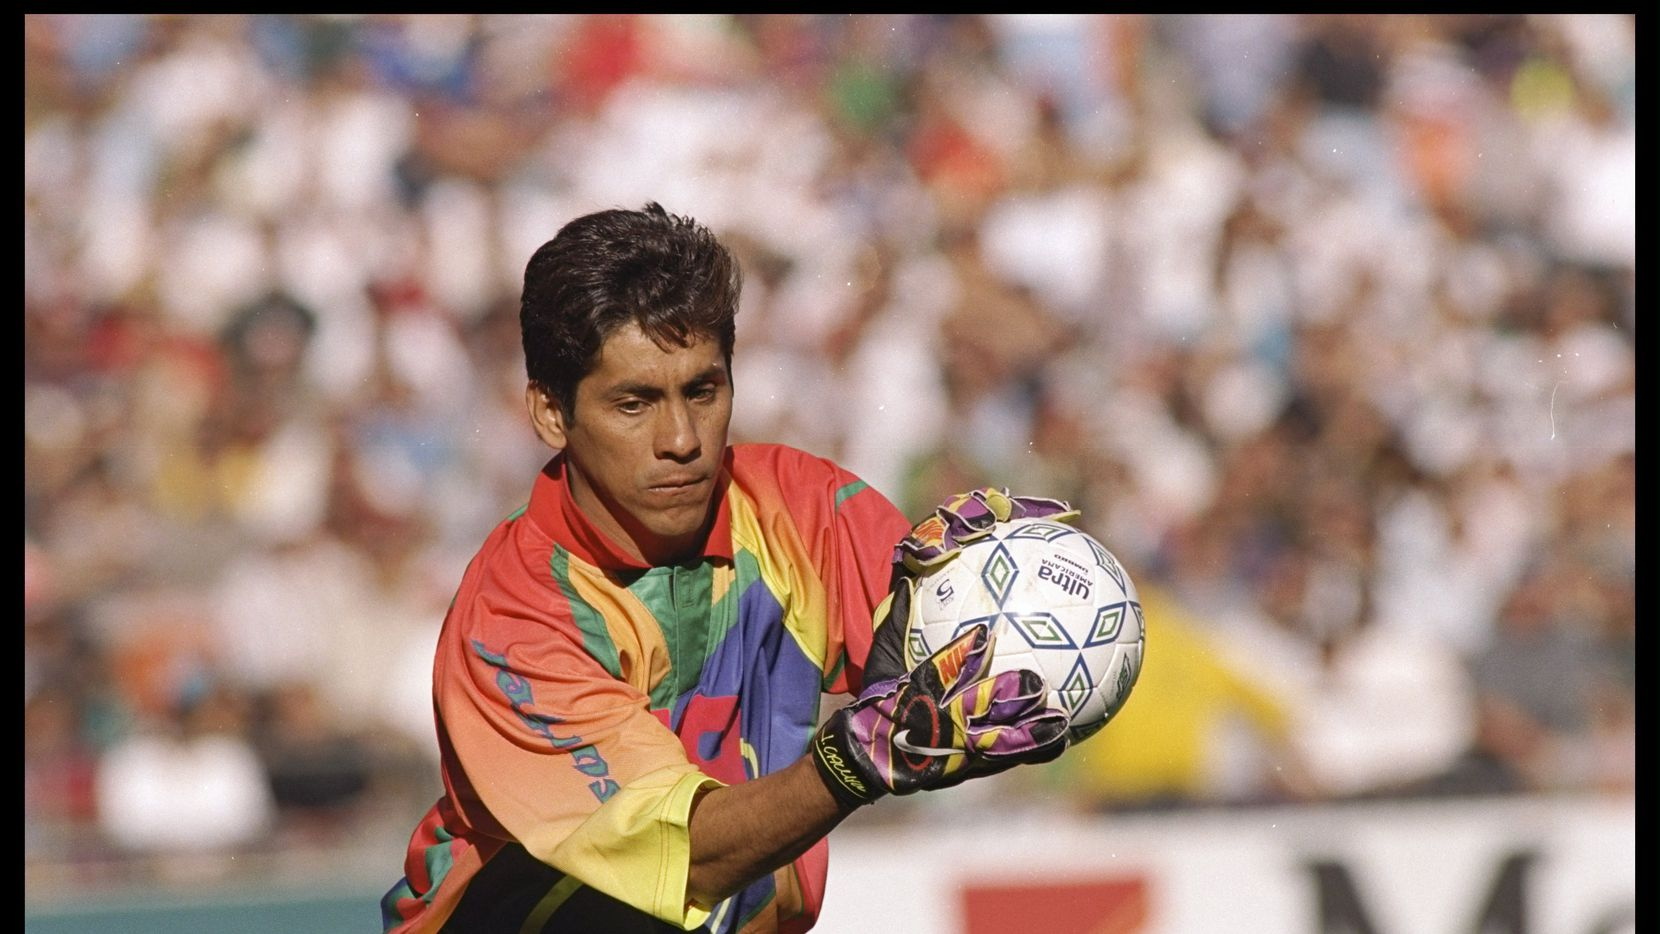 Mexico Legend Jorge Campos On What S Different About This El Tri Side Compared To Past Generations